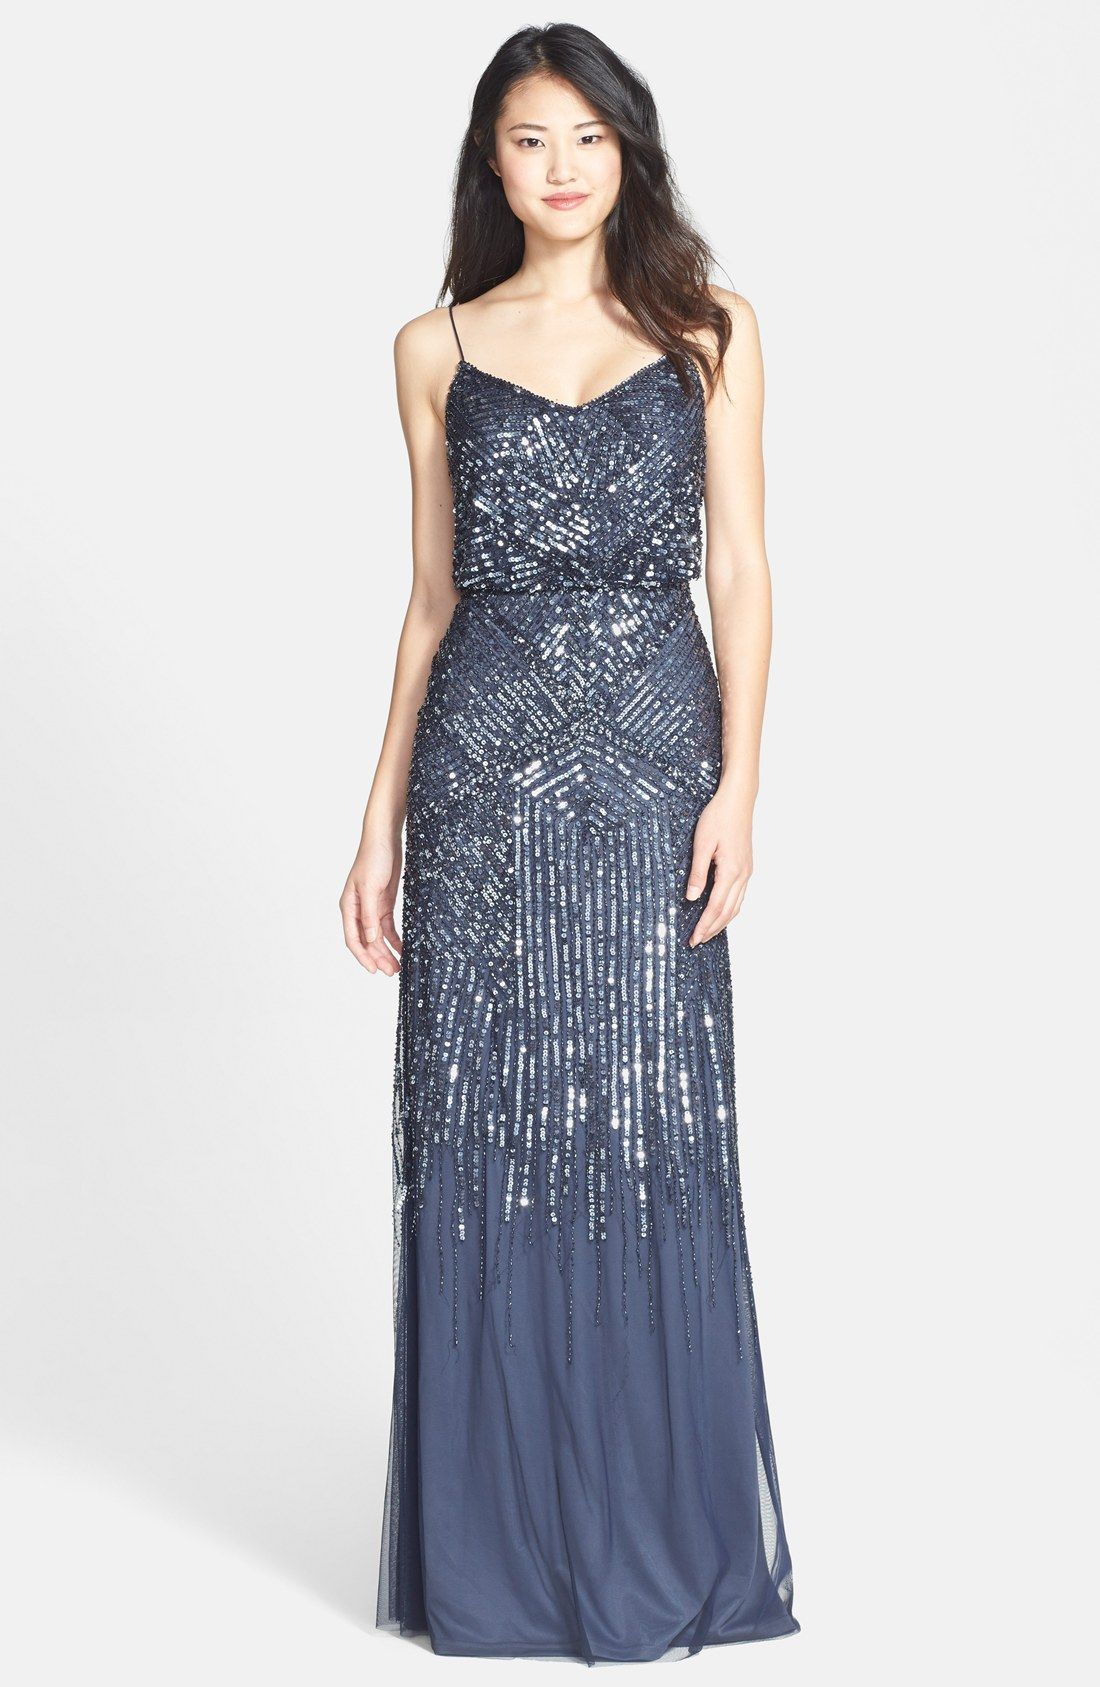 Free shipping and returns on adrianna papell beaded blouson gown free shipping and returns on adrianna papell beaded blouson gown at nordstrom angled ombrellifo Gallery